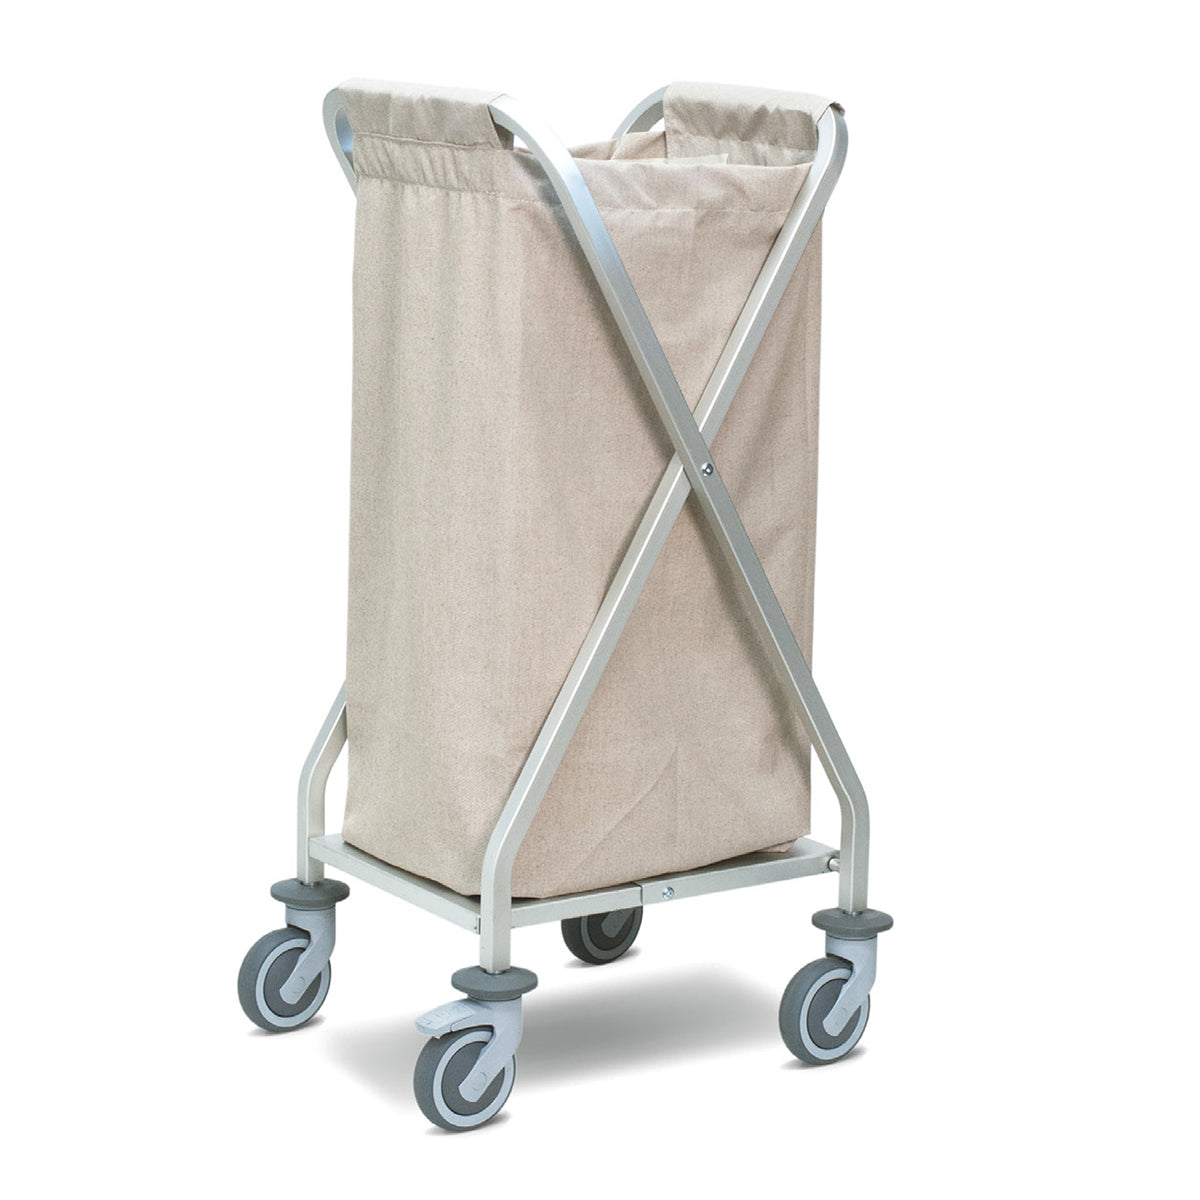 Callisto X Laundry & Cleaning Trolley